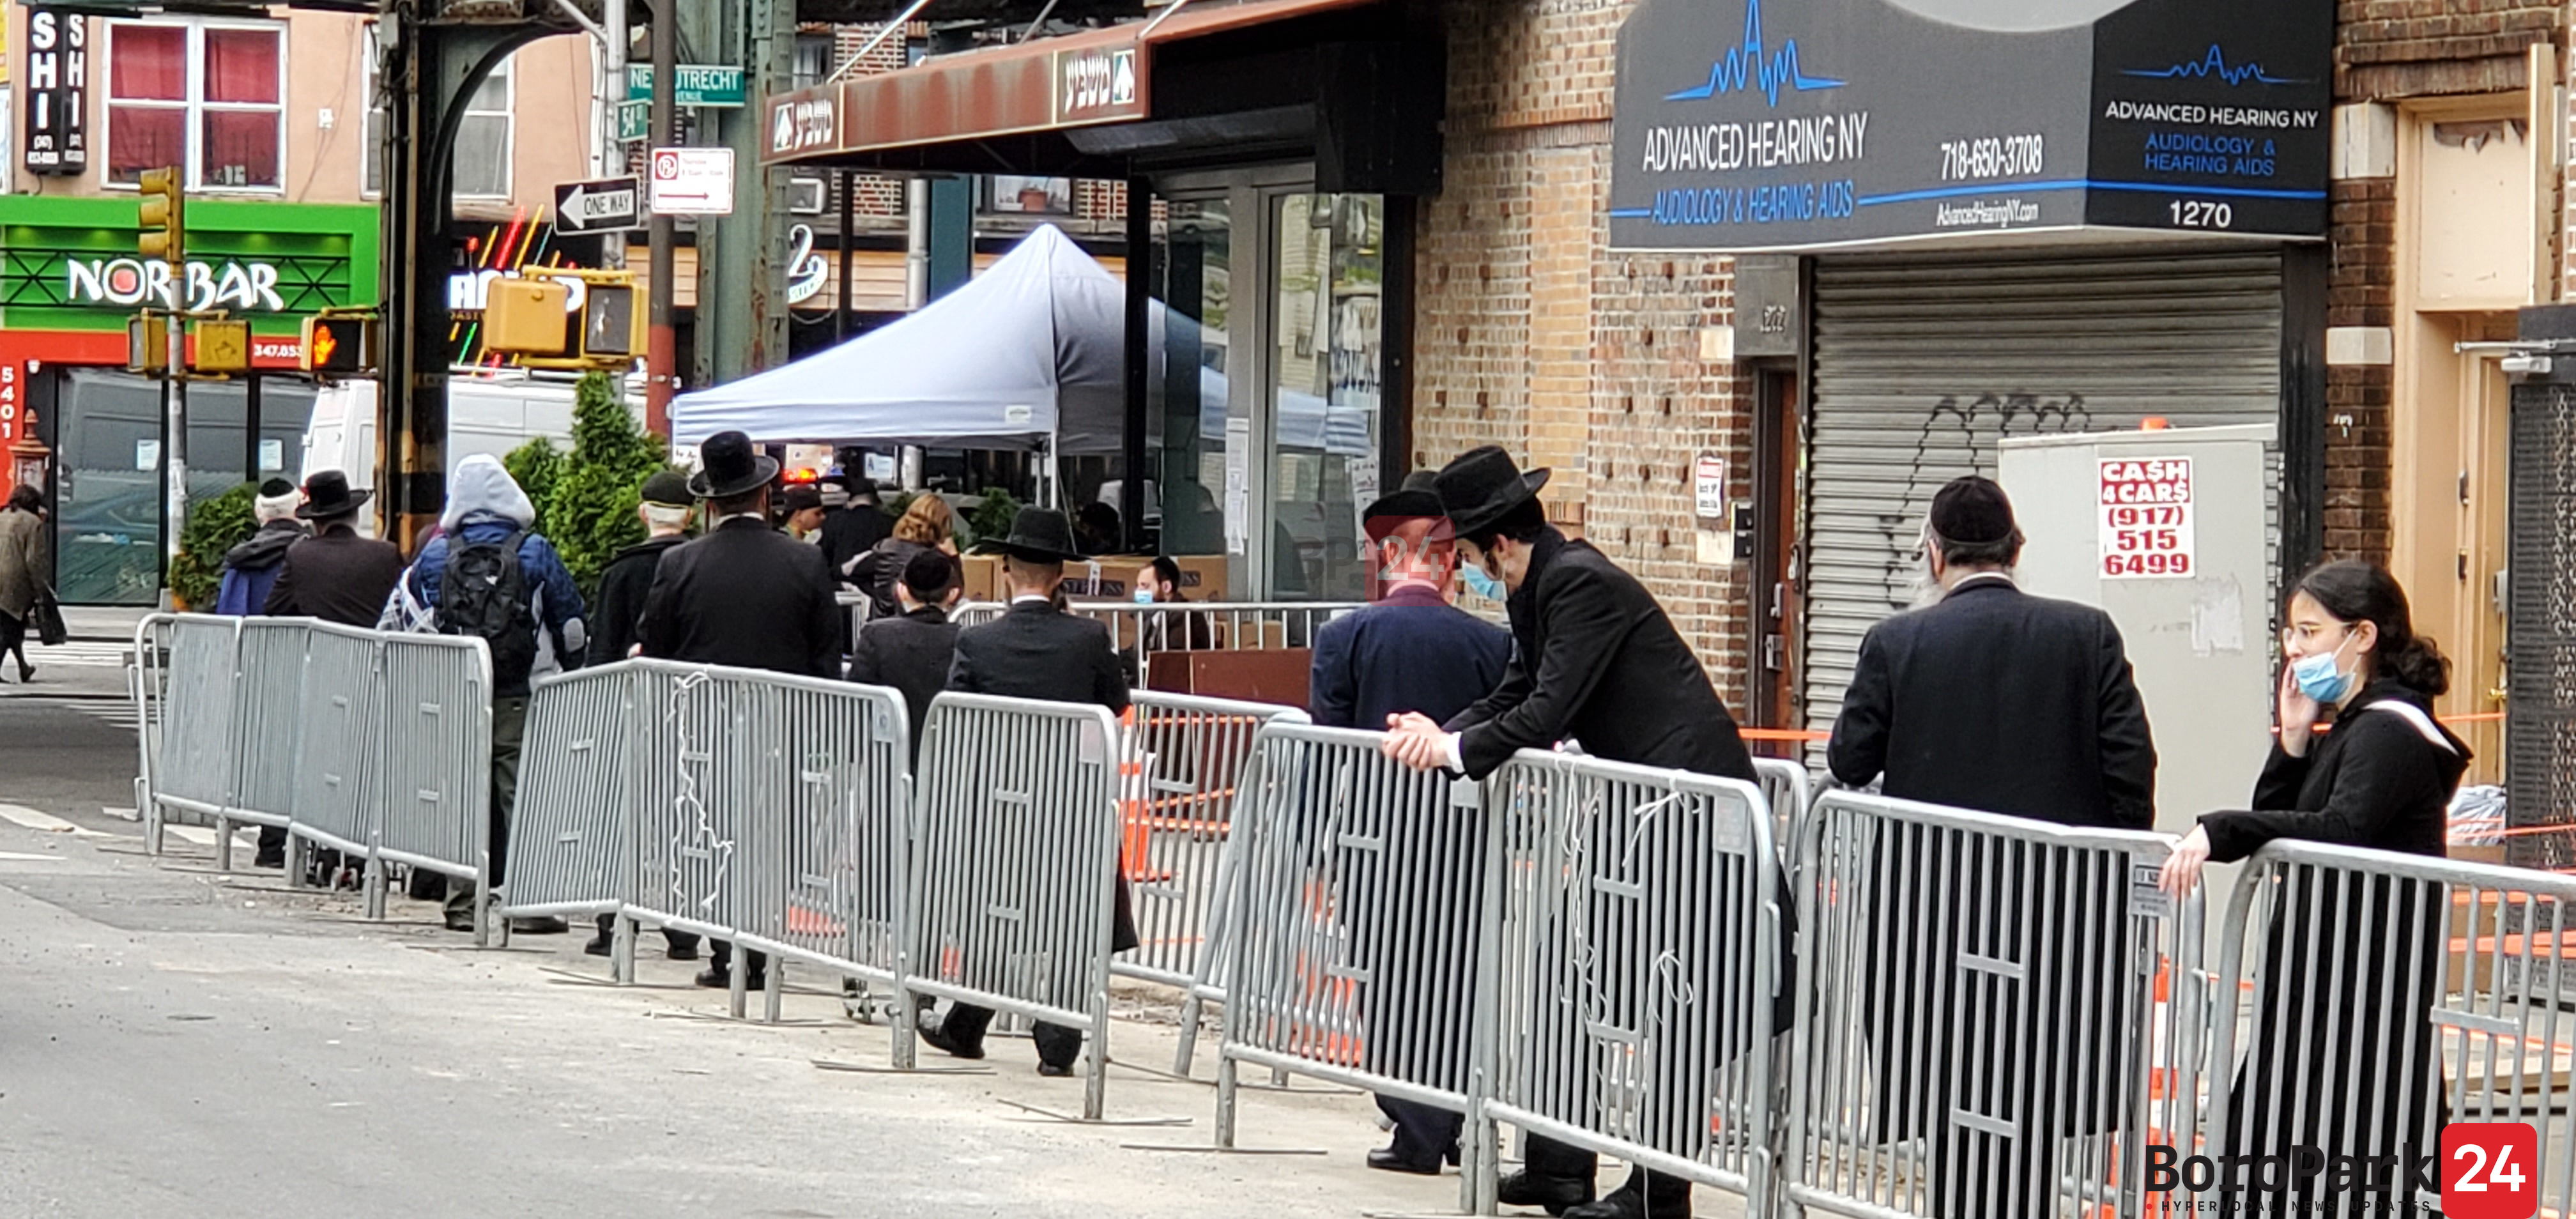 Masbia long lines will reduce due to will open 24 hours a day